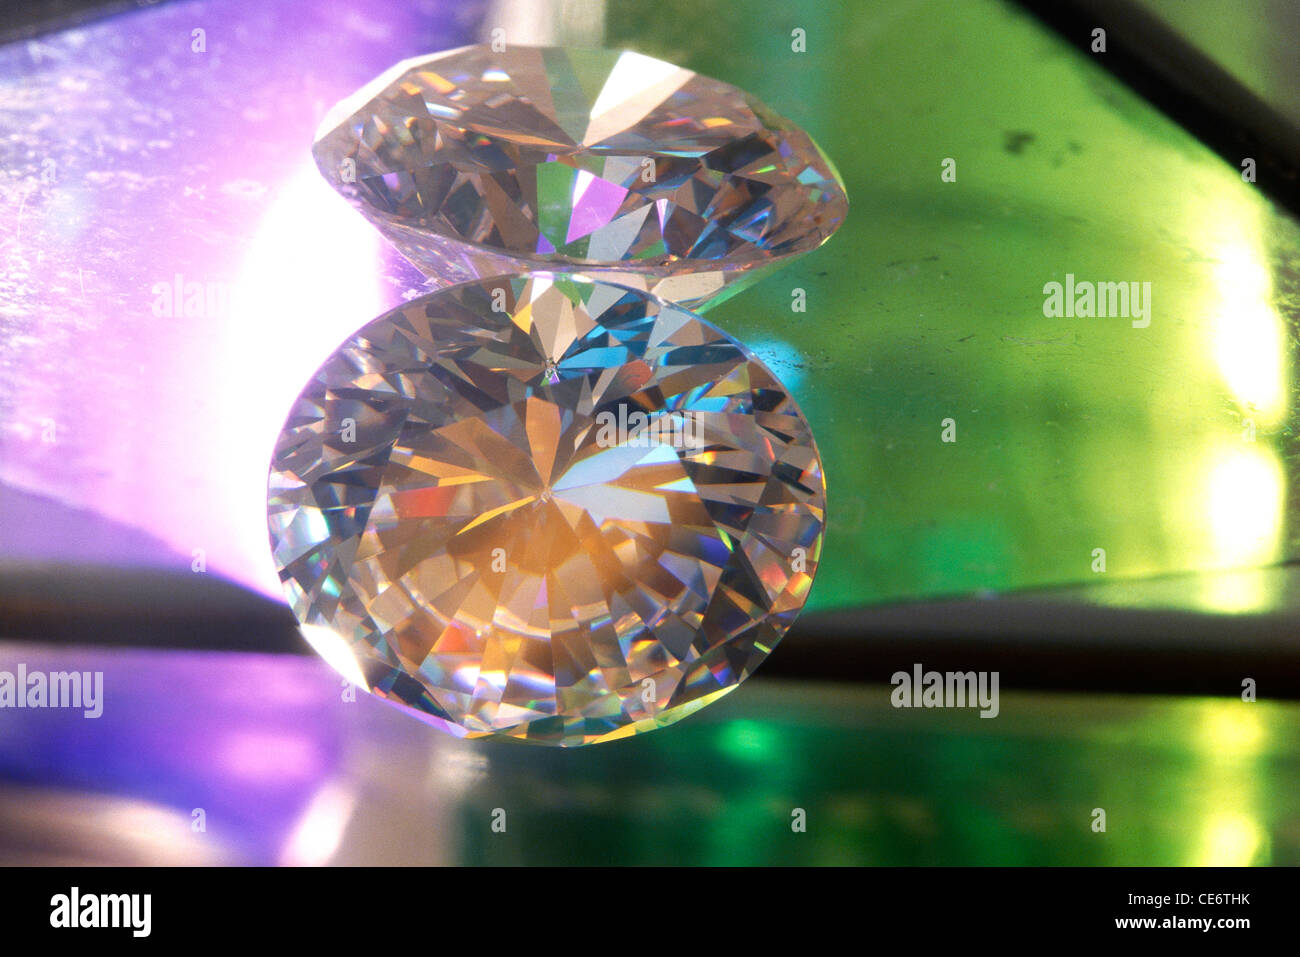 AAD 85190 : cut polished shining diamonds showing facets colours Stock Photo